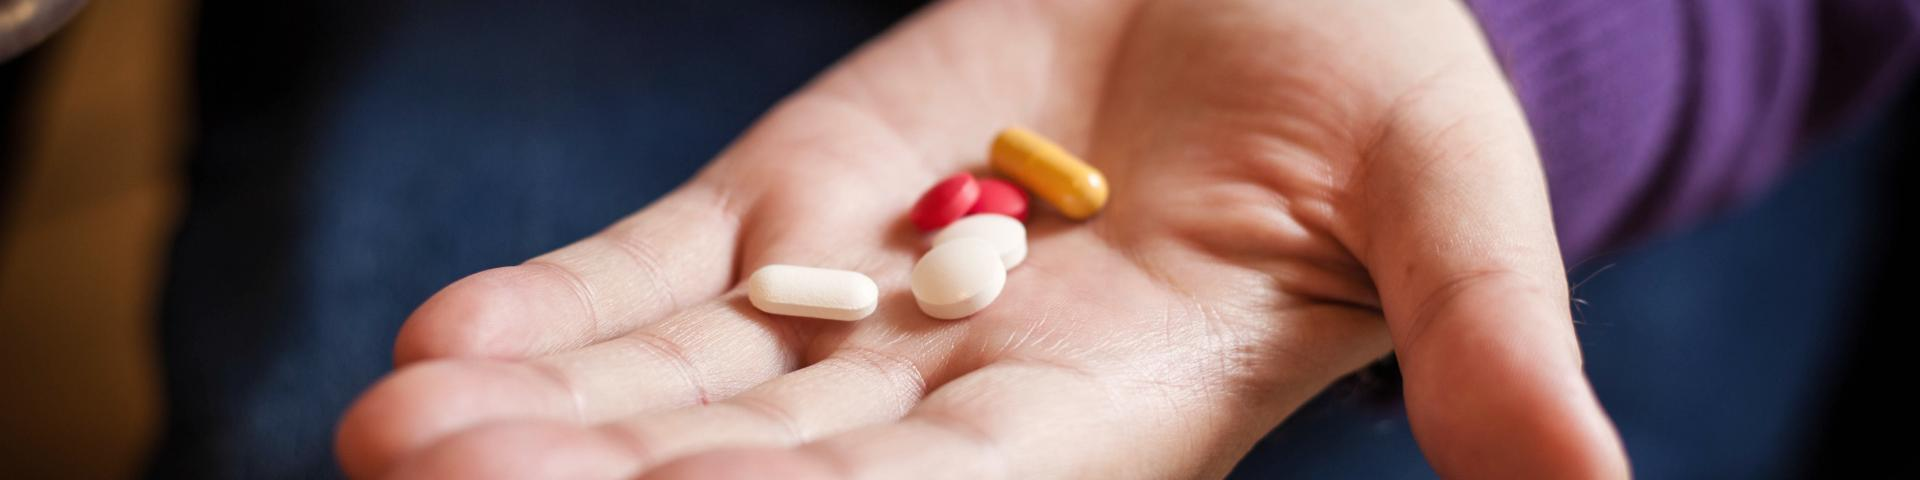 hand with medicines